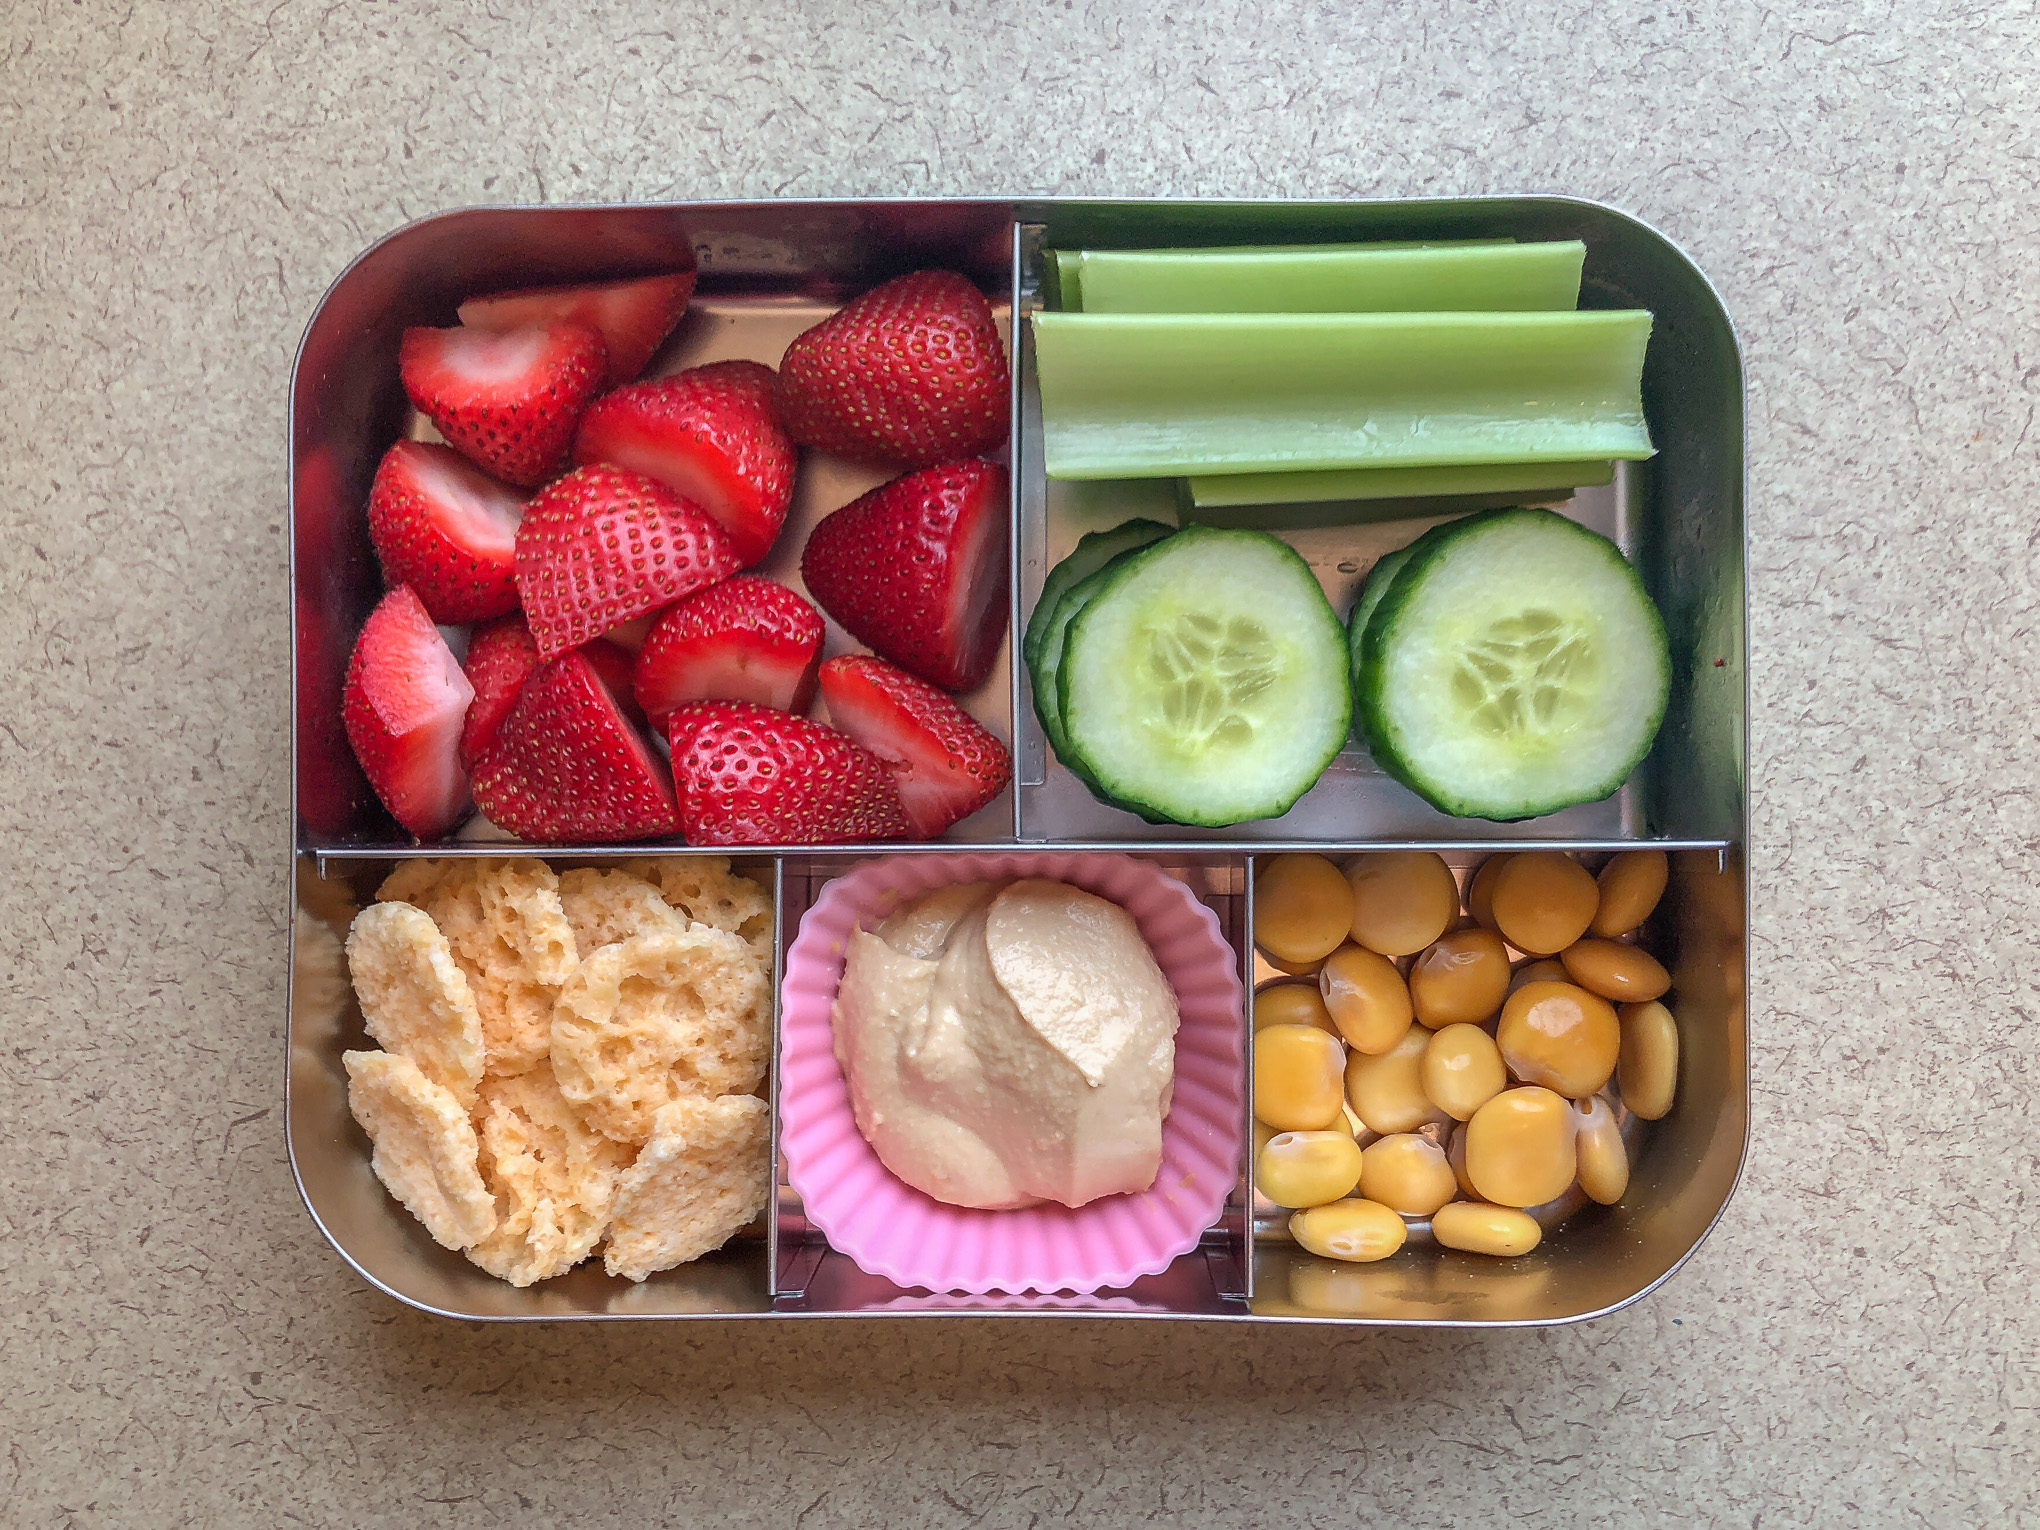 Bento box filled with berries, celery and beans